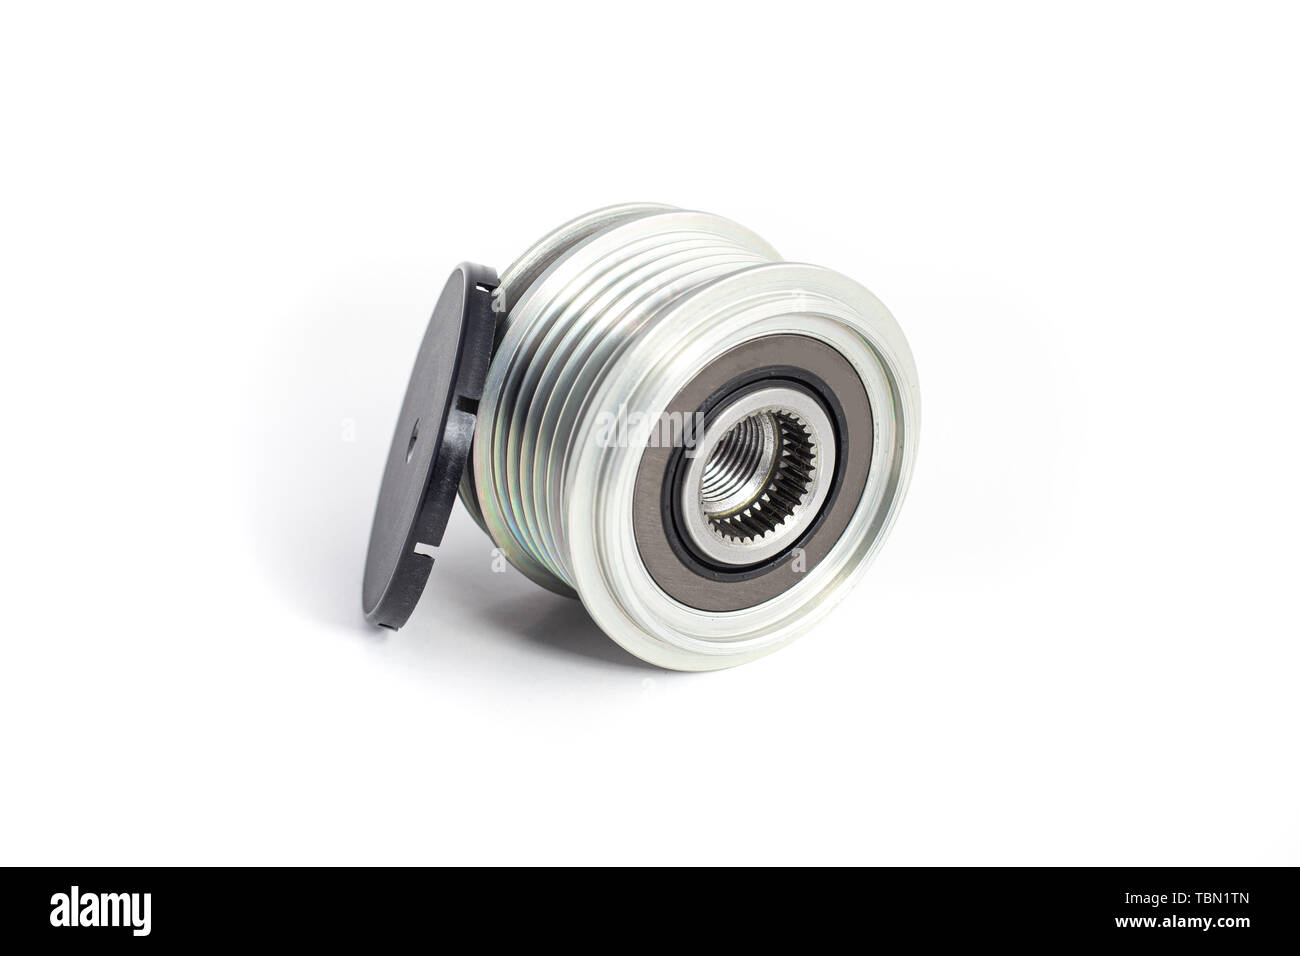 Freewheel alternator pulley on isolated white background with cap. Auto electrical parts. - Stock Image